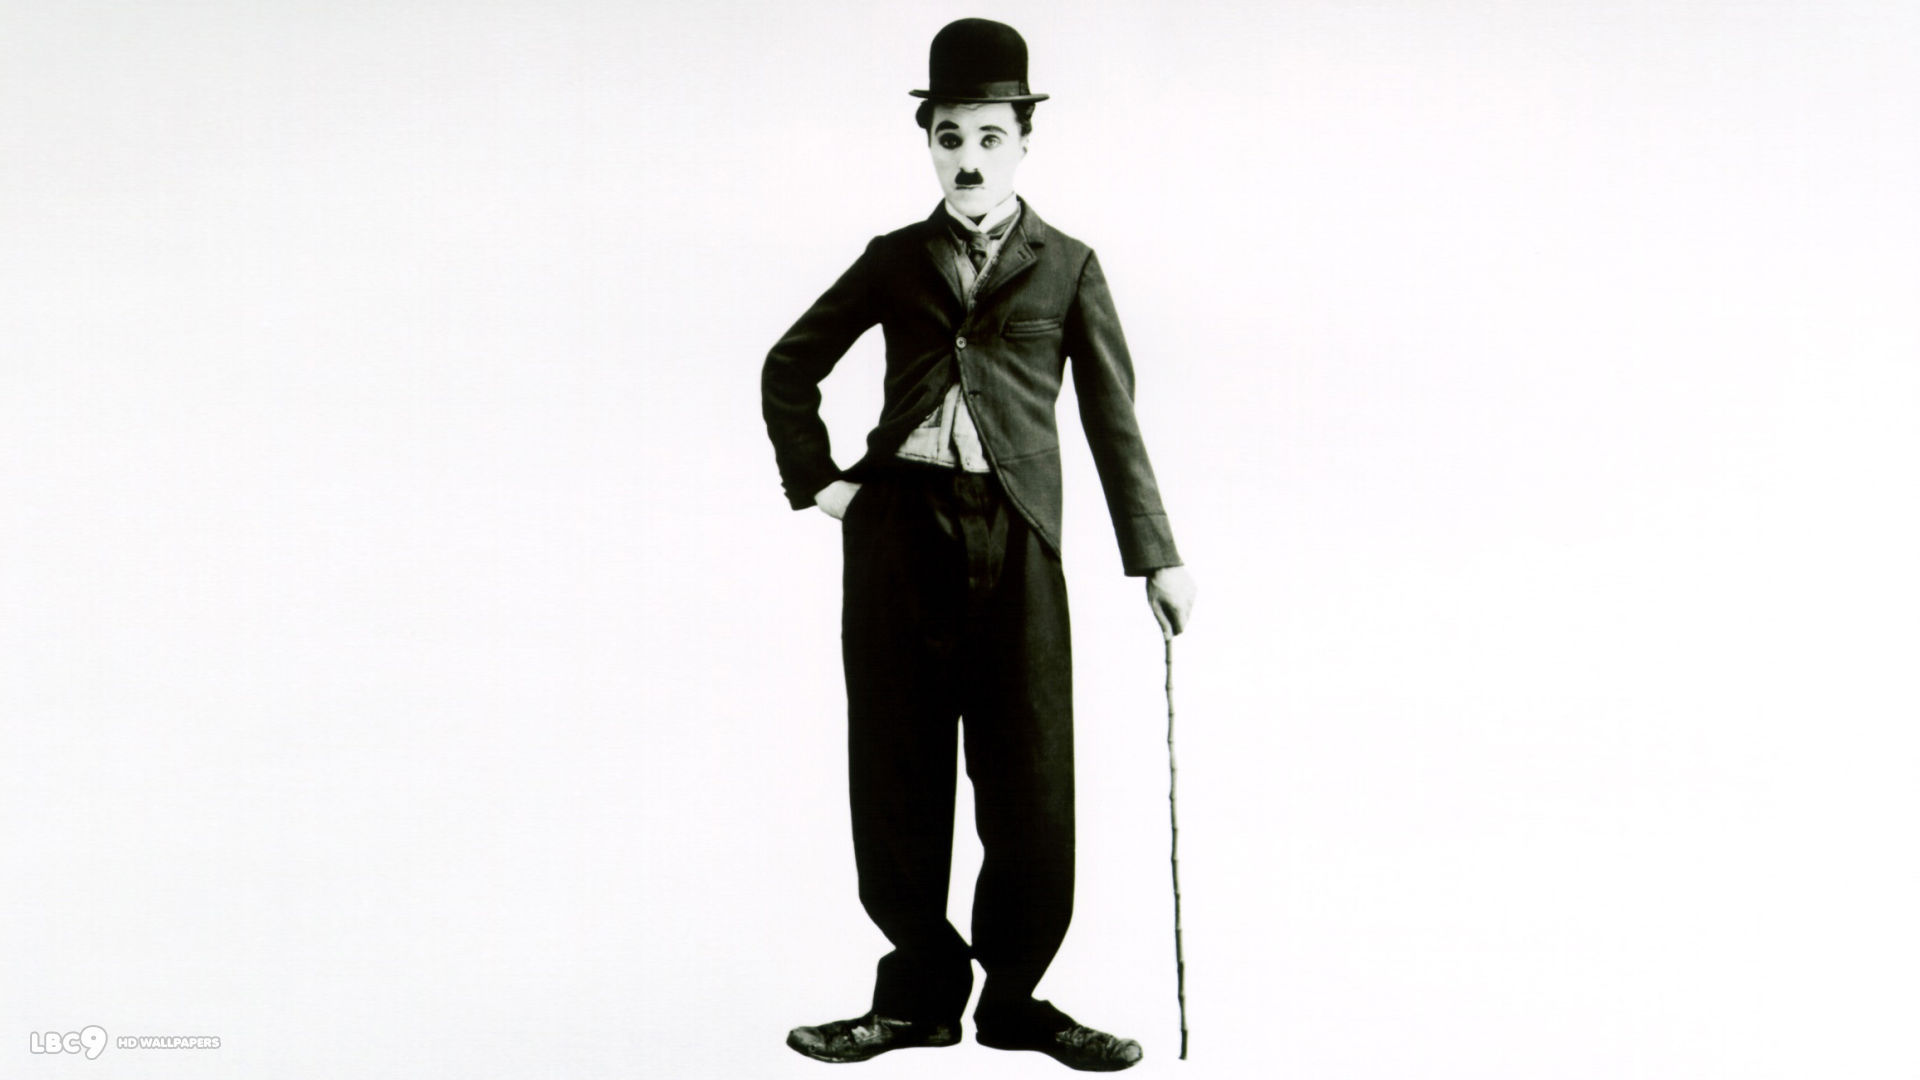 Charles Chaplin Wallpapers Images Photos Pictures Backgrounds 1920x1080